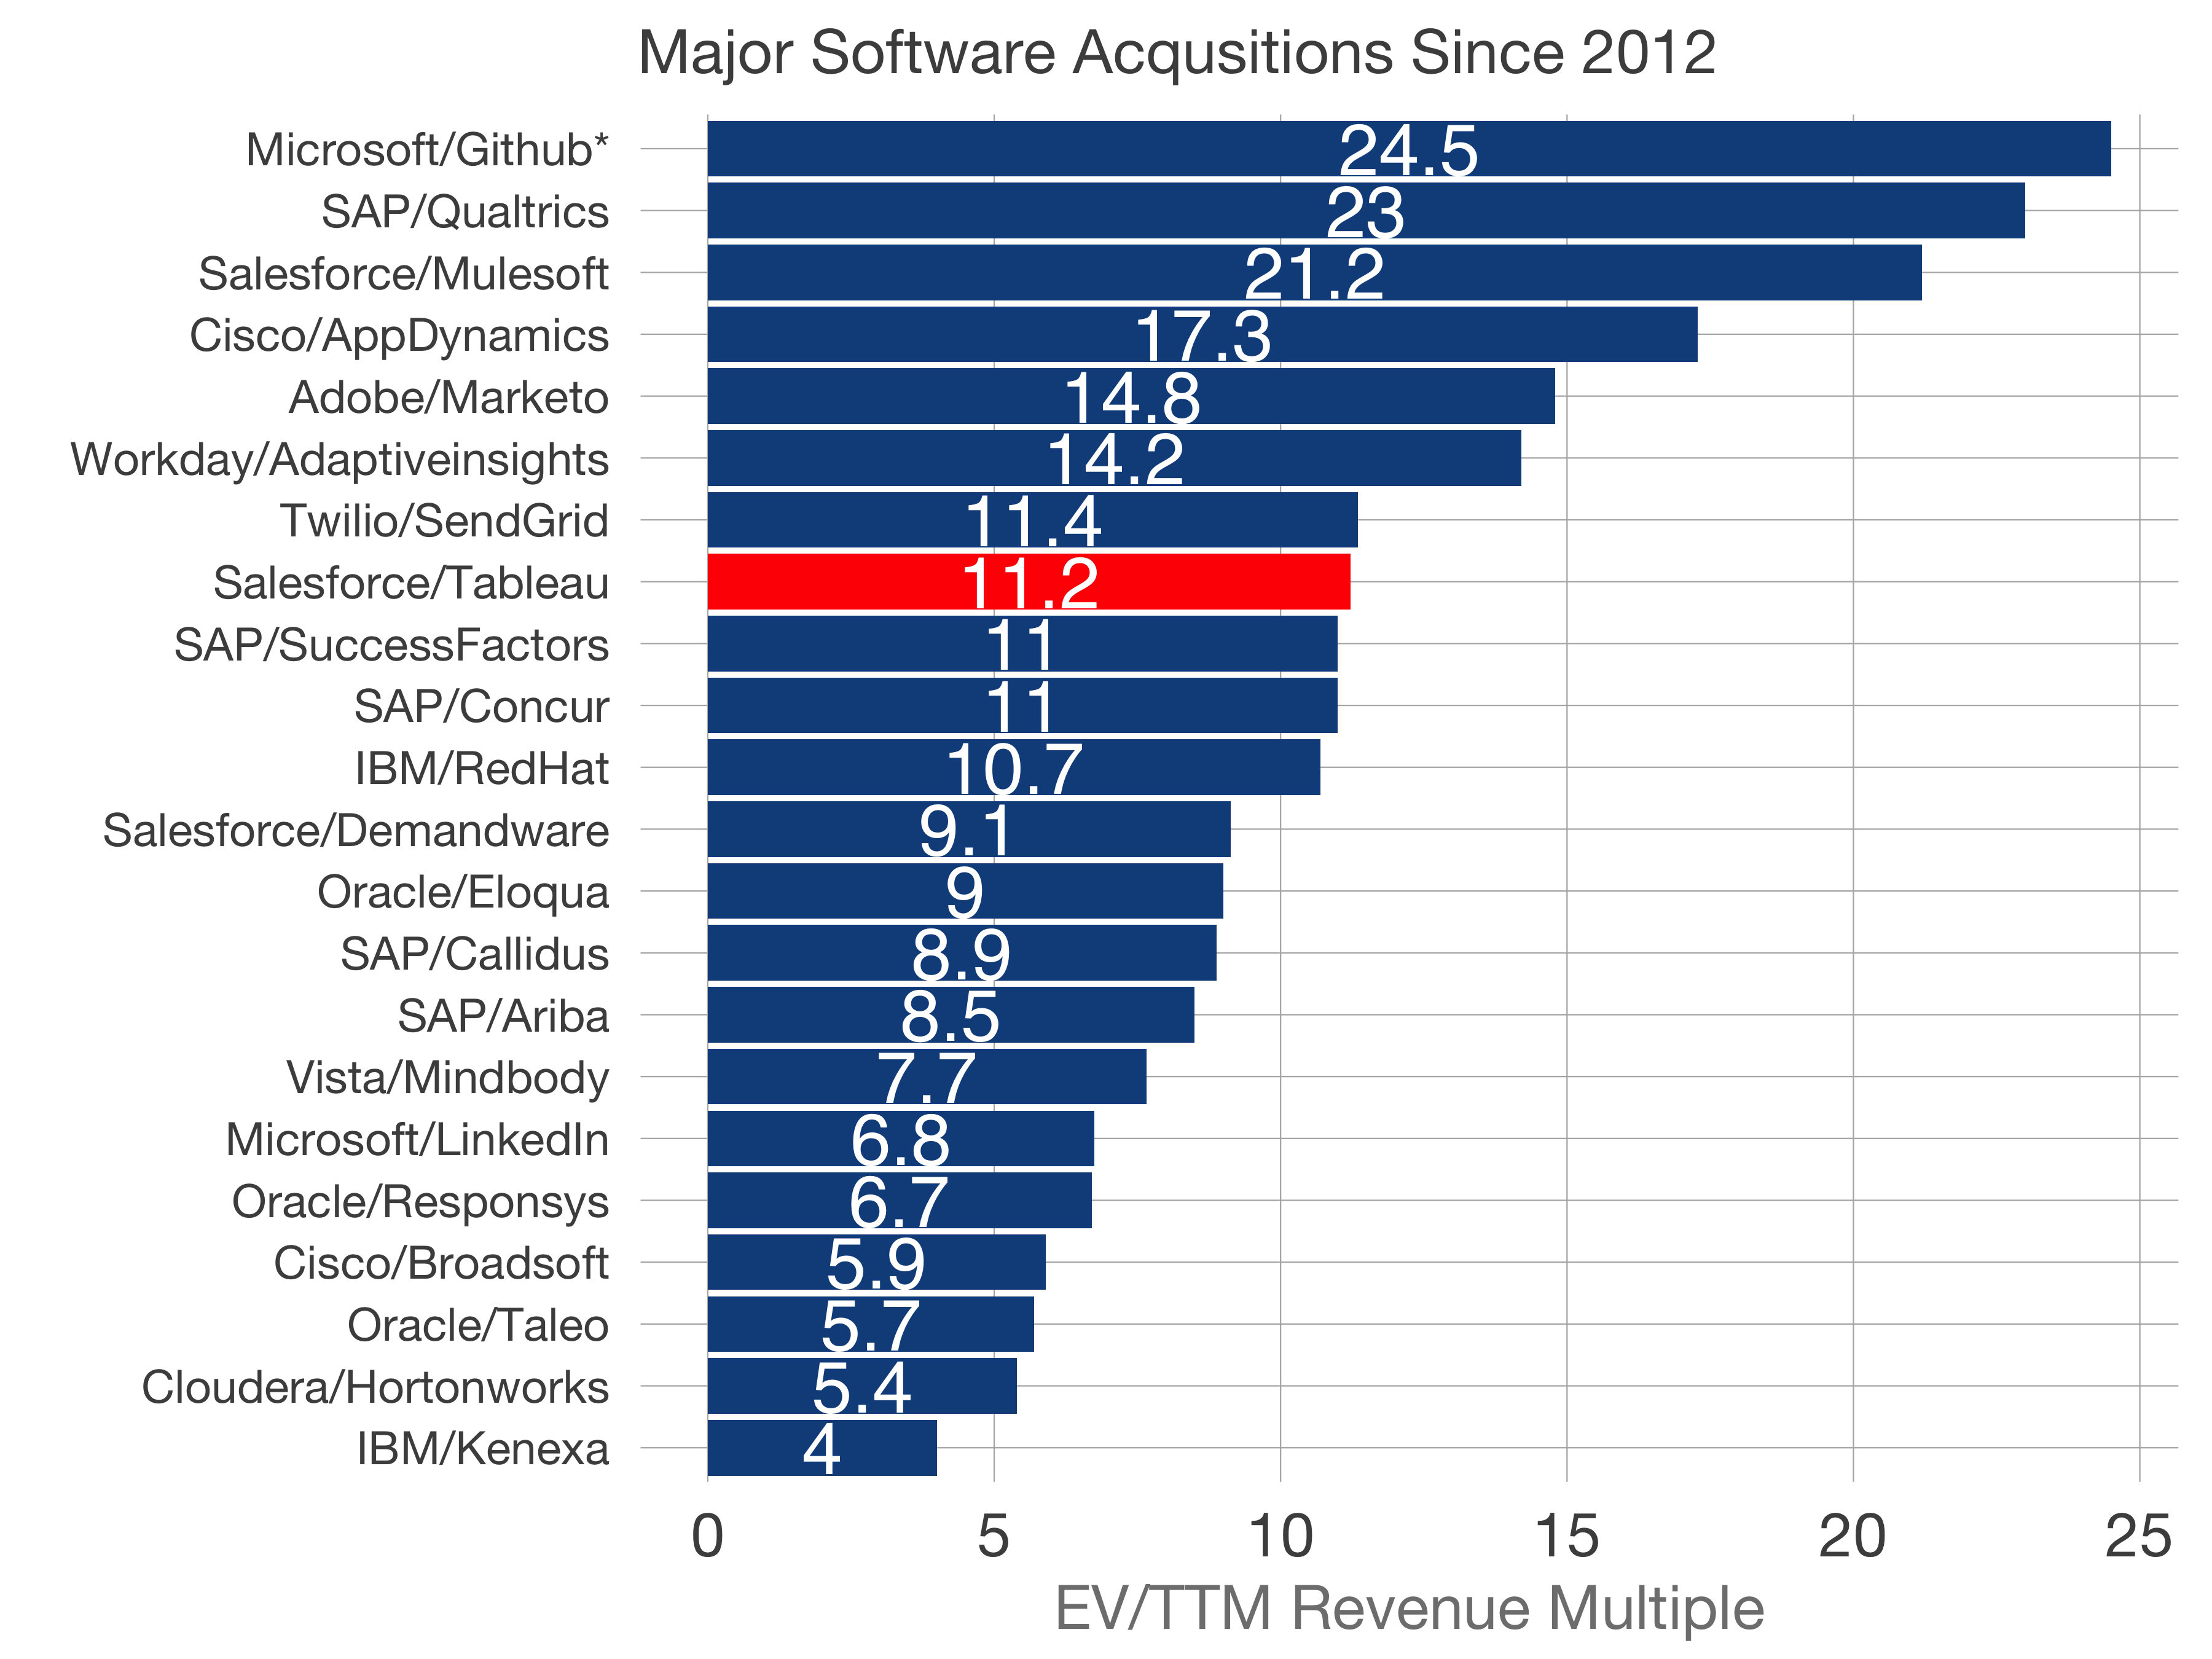 Setting the Salesforce/Tableau Acquisition in Context